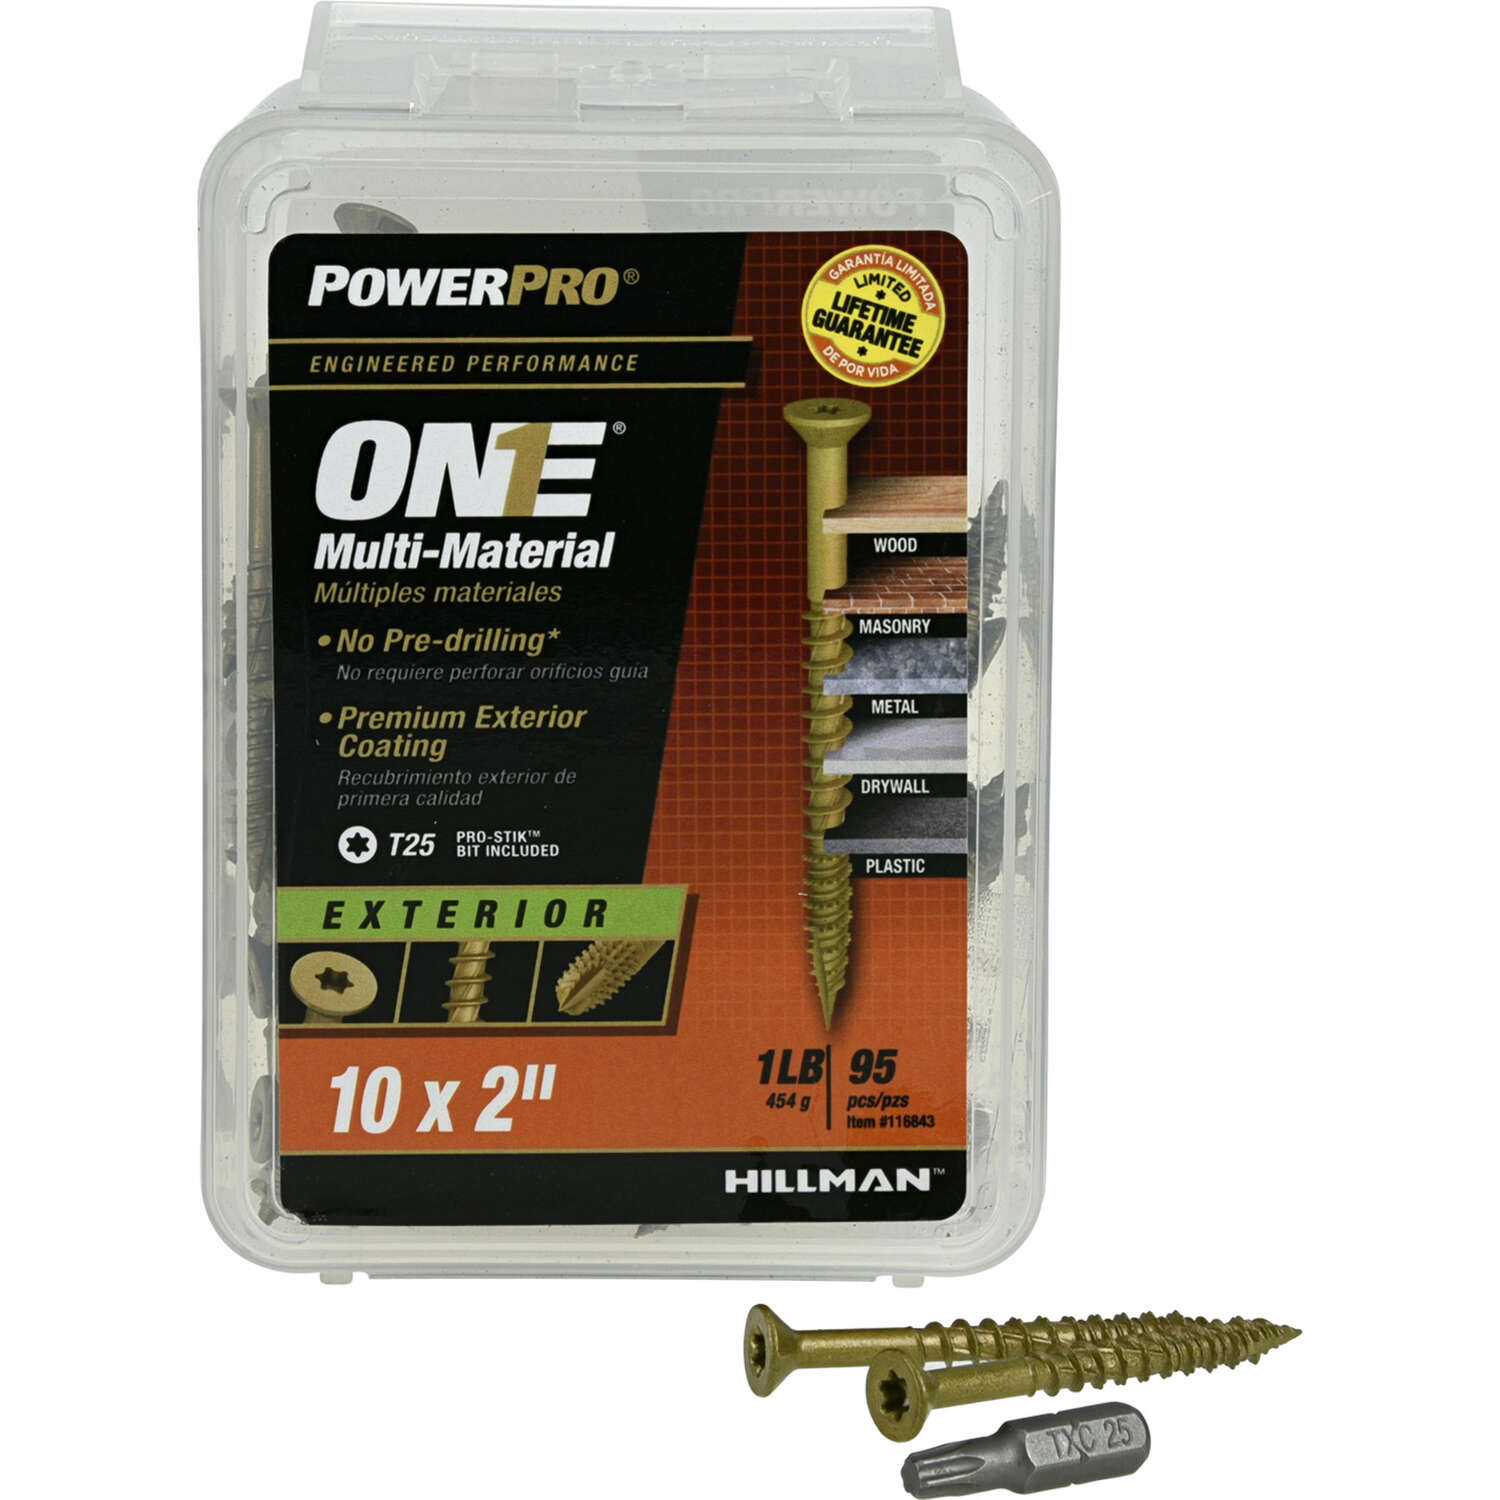 Hillman  POWERPRO ONE  No. 10   x 2 in. L Star  Flat Head Multi-Material Screw  1 lb. 95 pk